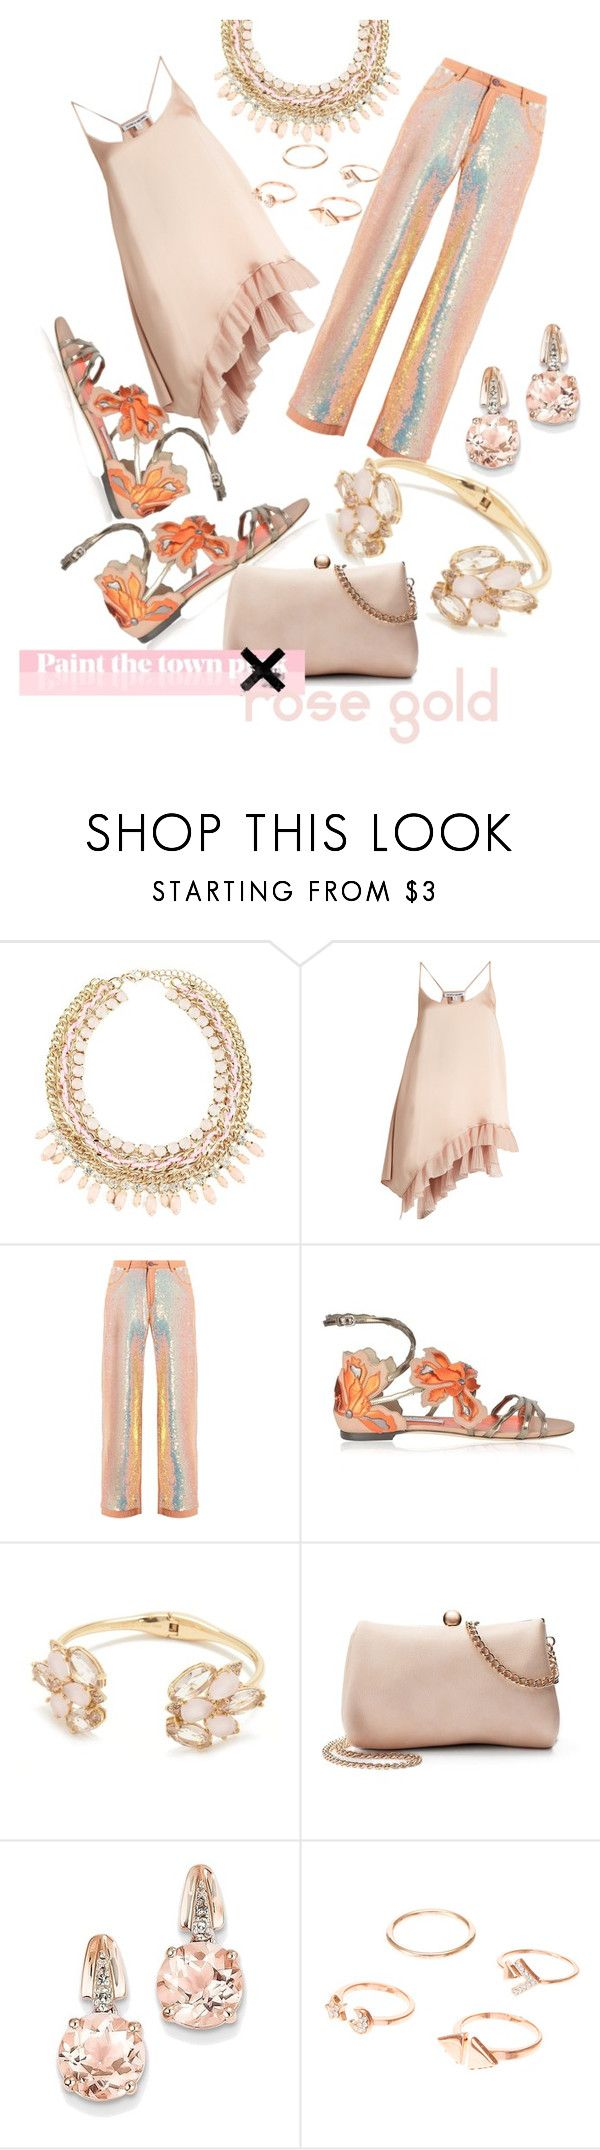 """Paint the Town Rose Gold🤗"" by mdfletch ❤ liked on Polyvore featuring Elizabeth and James, Ashish, Jimmy Choo, Kate Spade, LC Lauren Conrad, BillyTheTree and paintthetownrosegold"